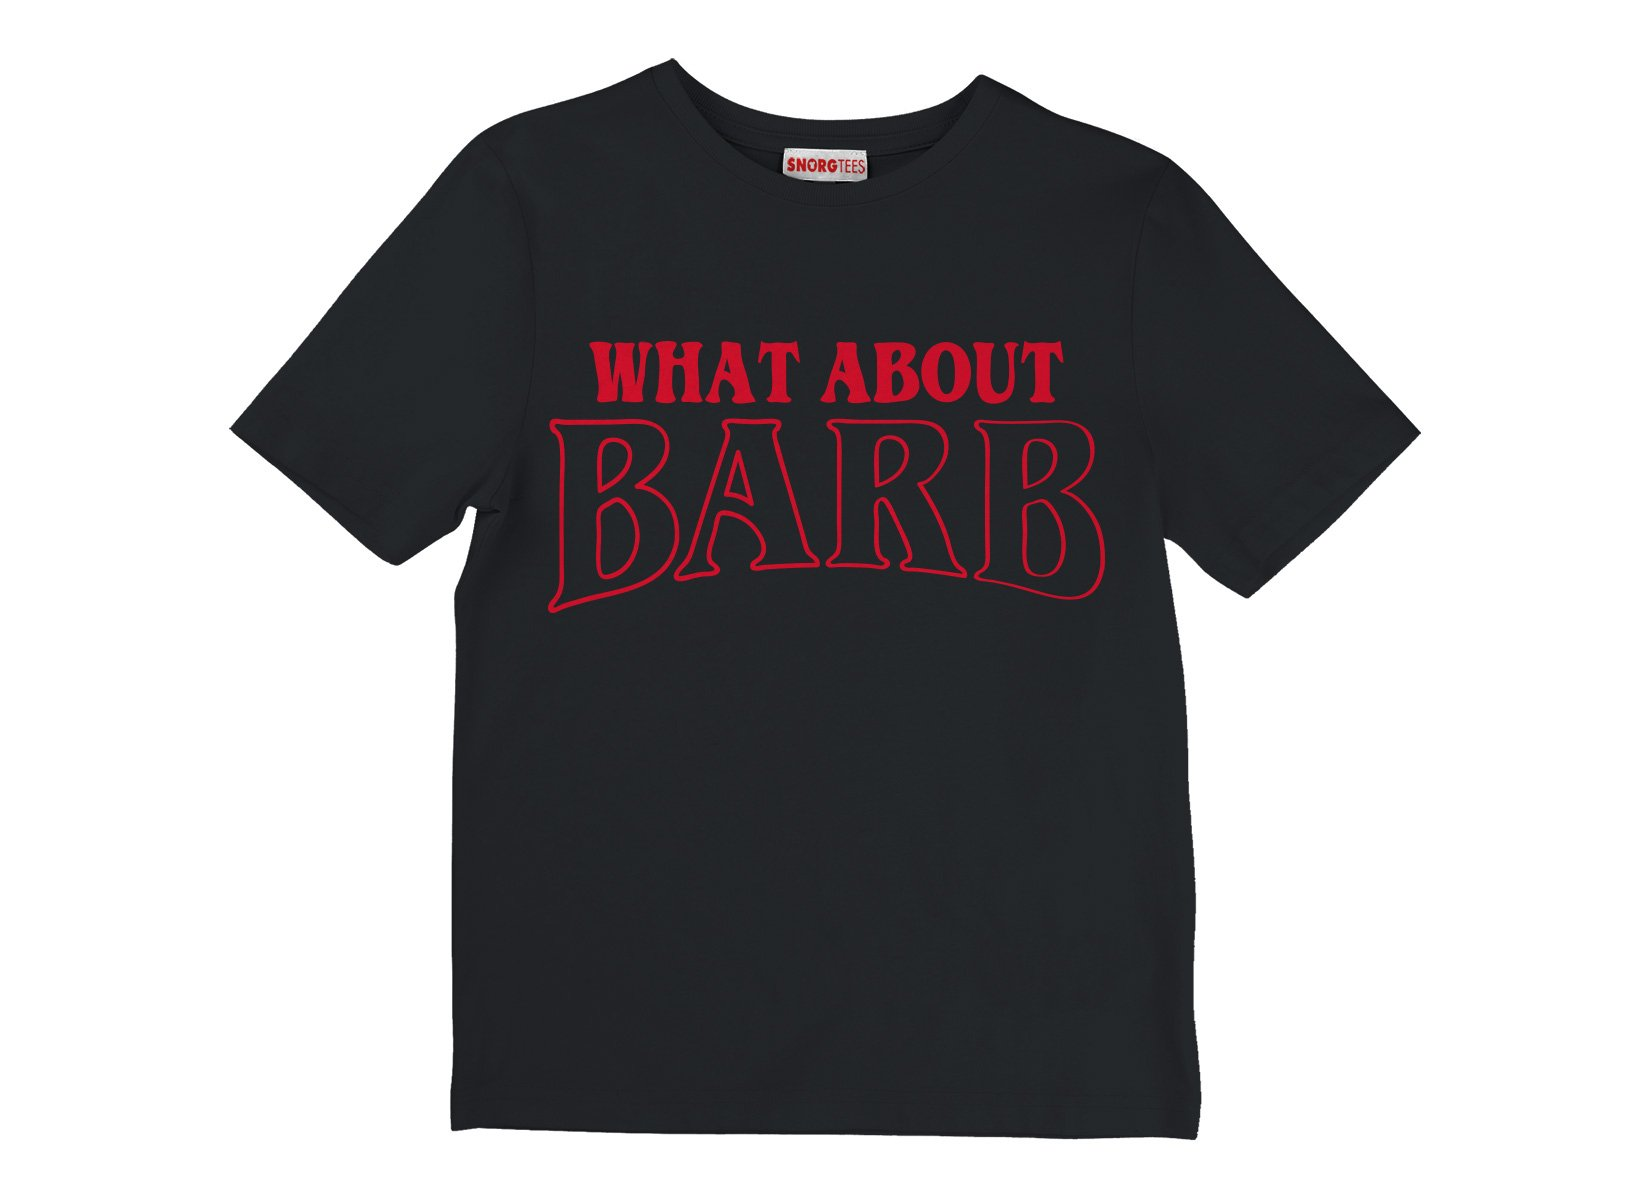 What About Barb? on Kids T-Shirt